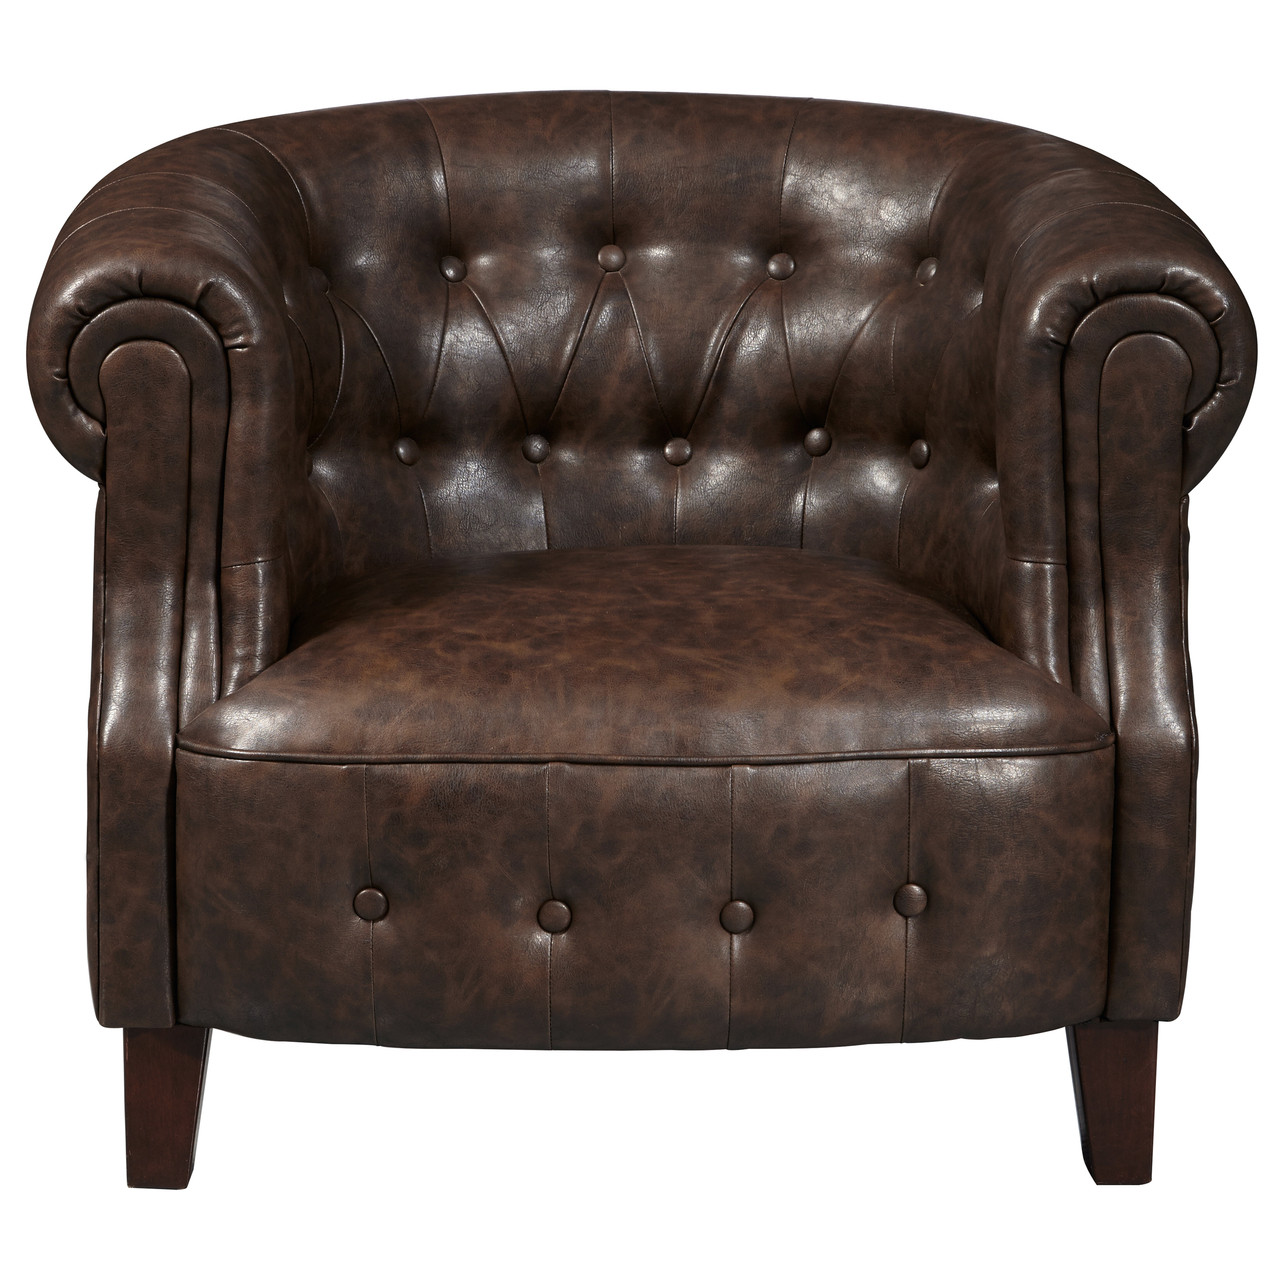 Delicieux Brown Faux Leather Tufted Barrel Arm Chair   DS D113001